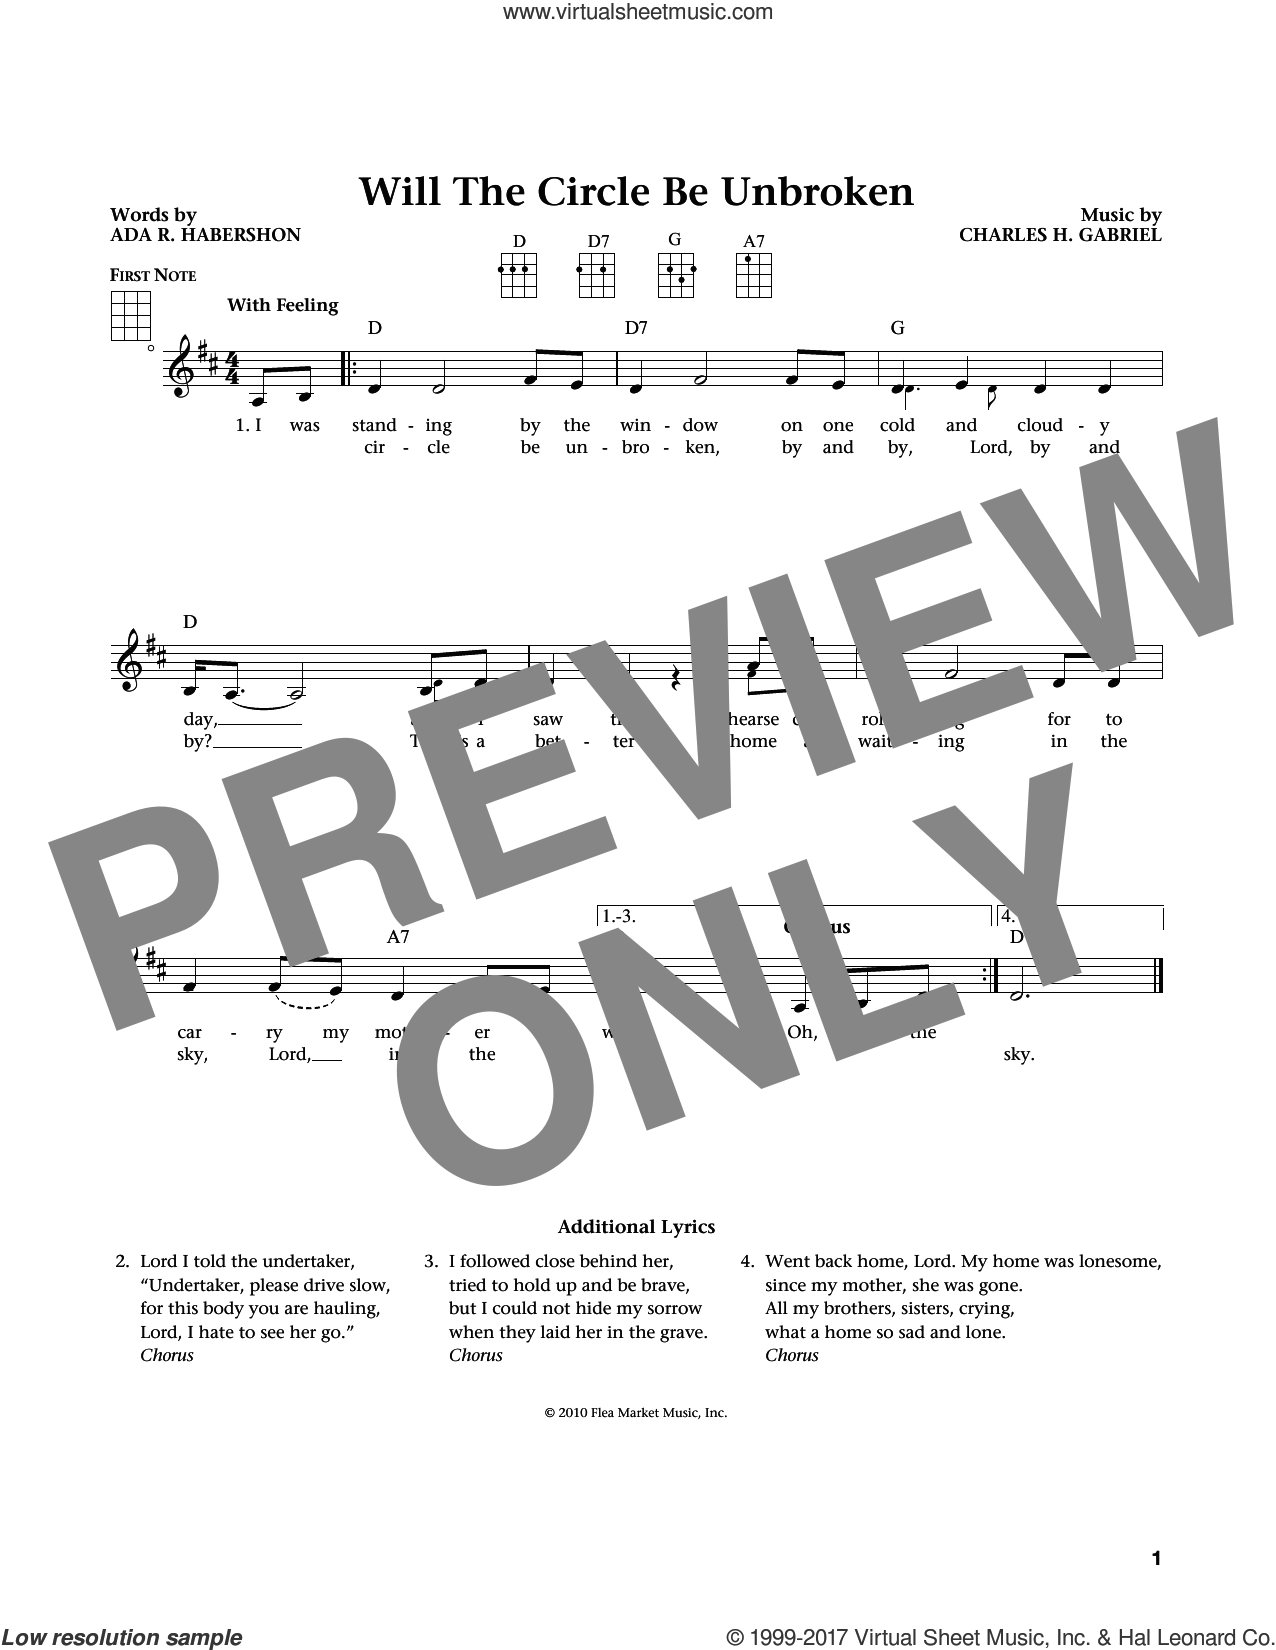 Will The Circle Be Unbroken sheet music for ukulele by Charles H. Gabriel, Jim Beloff, Liz Beloff and Ada R. Habershon, intermediate skill level